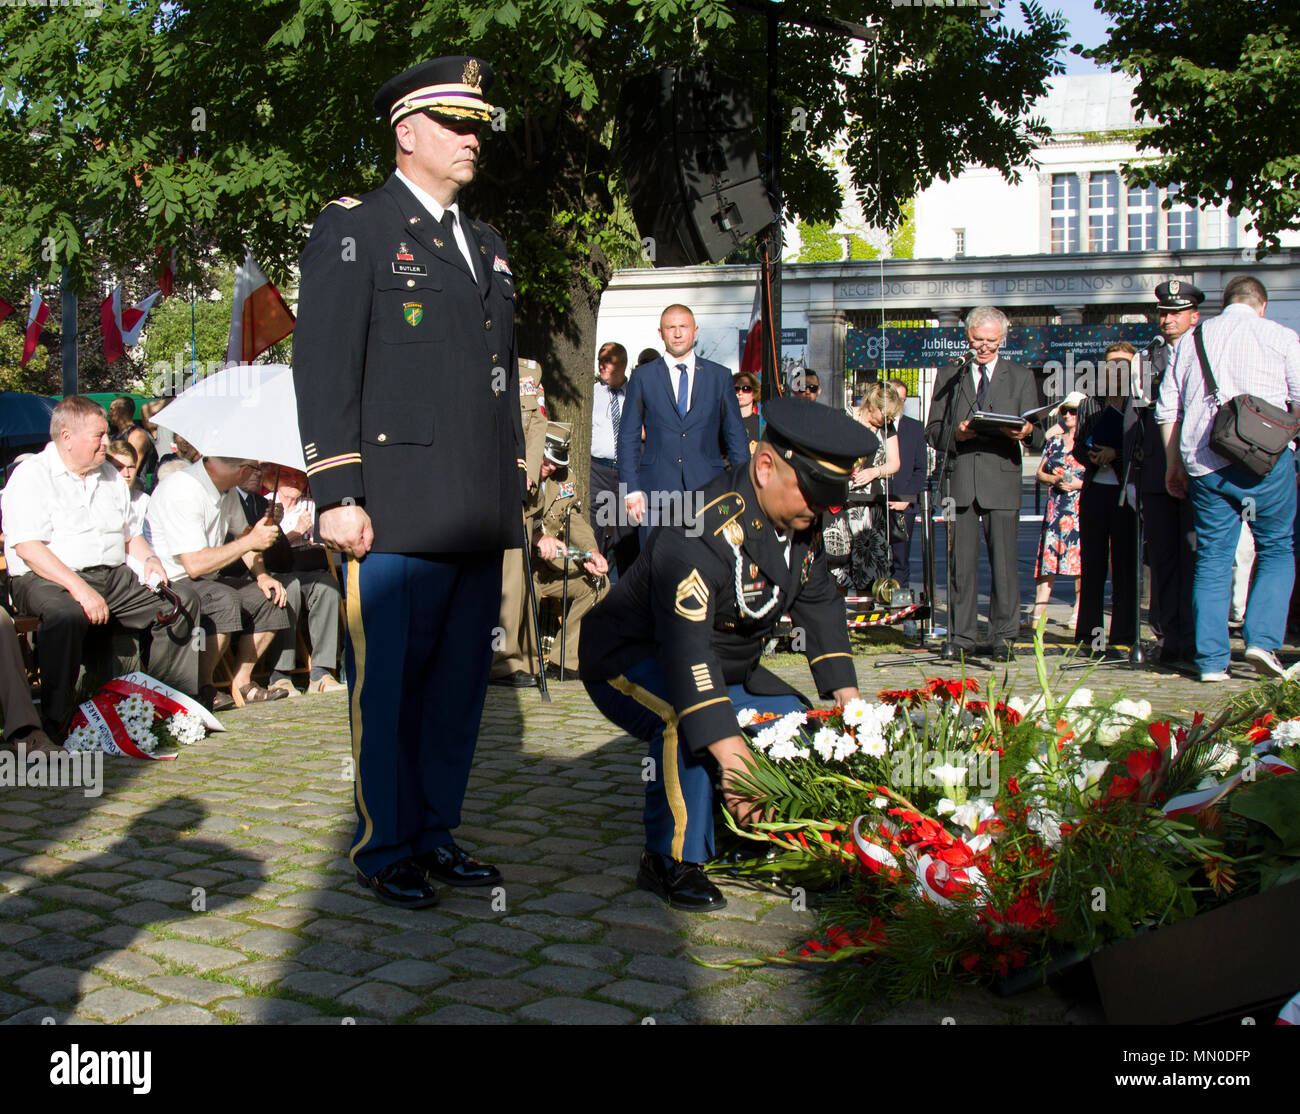 POZNAN-Poland – Sgt. 1st Class David Acosta, noncommissioned-officer-in-charge,  Mission Command Element-Atlantic Resolve lays a wreath honoring those who paid the ultimate sacrifice during the  73rd Annual Warsaw Uprising Ceremony Aug. 1, 2017.  Maj. Michael Butler, civil affairs officer-in-charge, MCE AR and Acosta represented MCE-AR during the commemorative ceremony. The Uprising began Aug. 1, 1944 when the Polish resistance attempted to liberate Warsaw from Nazi Germany in occupied Poland. The uprising lasted for 63 days, ending after a massive retaliation by the Nazis. The MCE, now based  Stock Photo